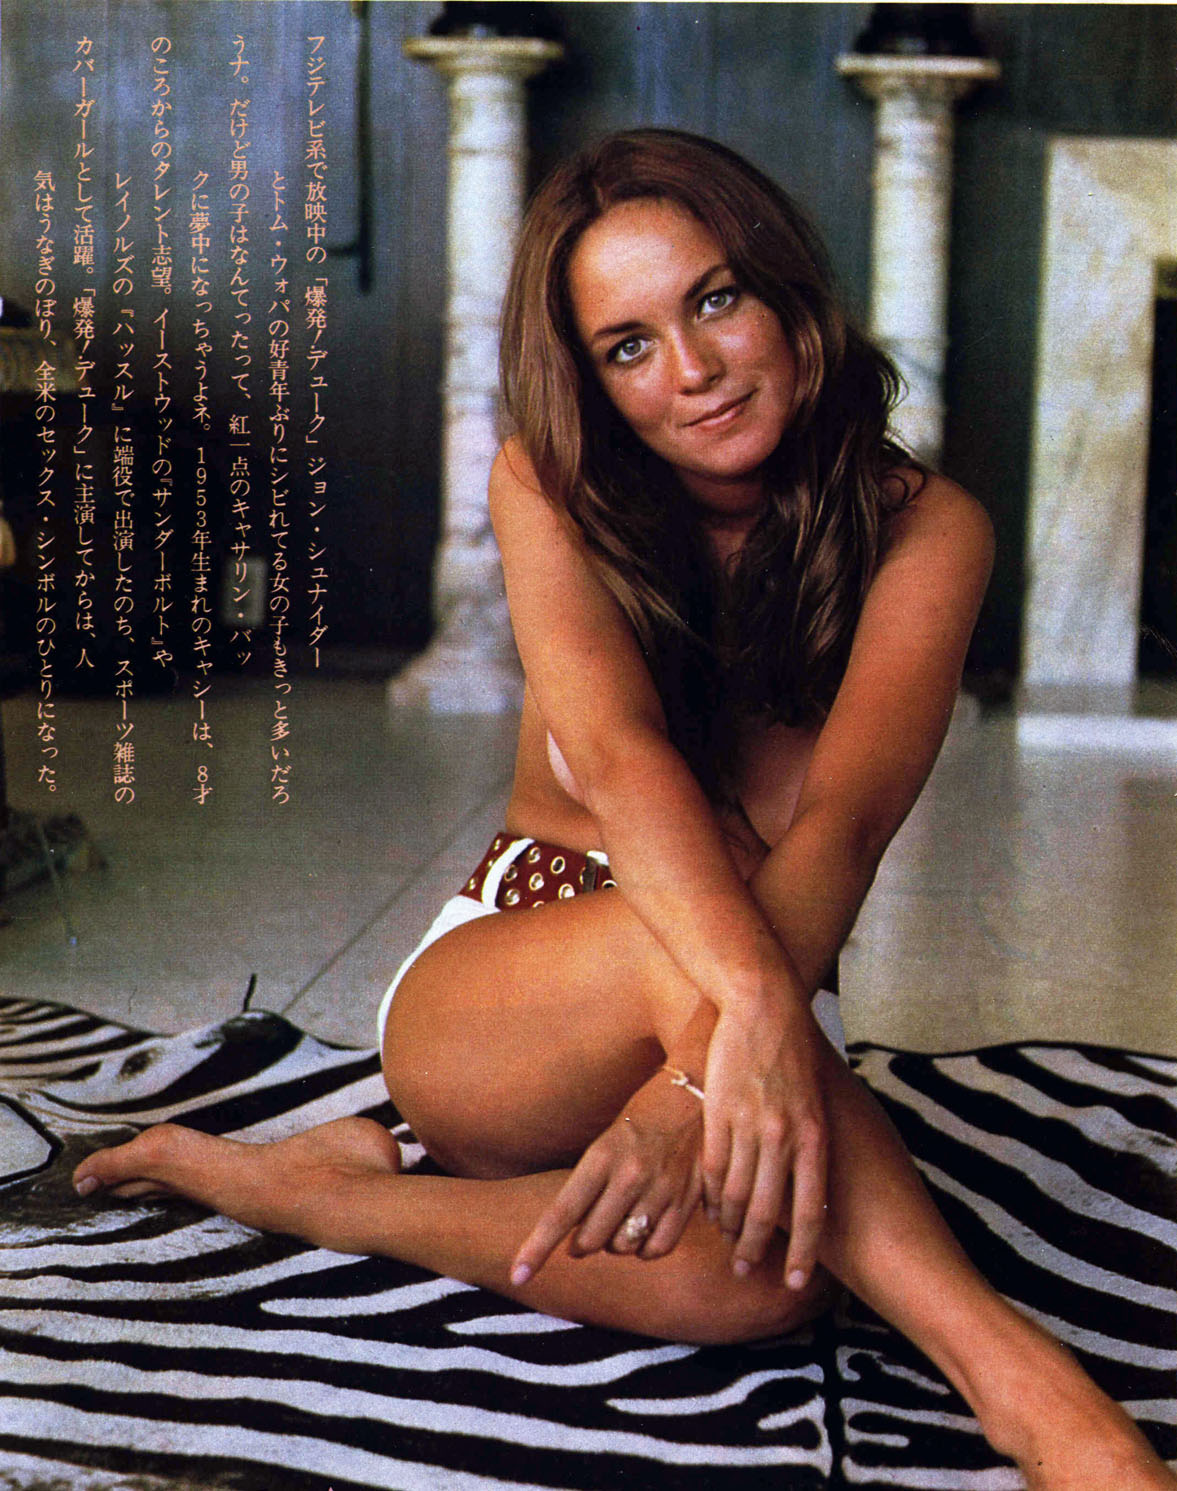 La pin-up de la semaine n°28 : Catherine Bach